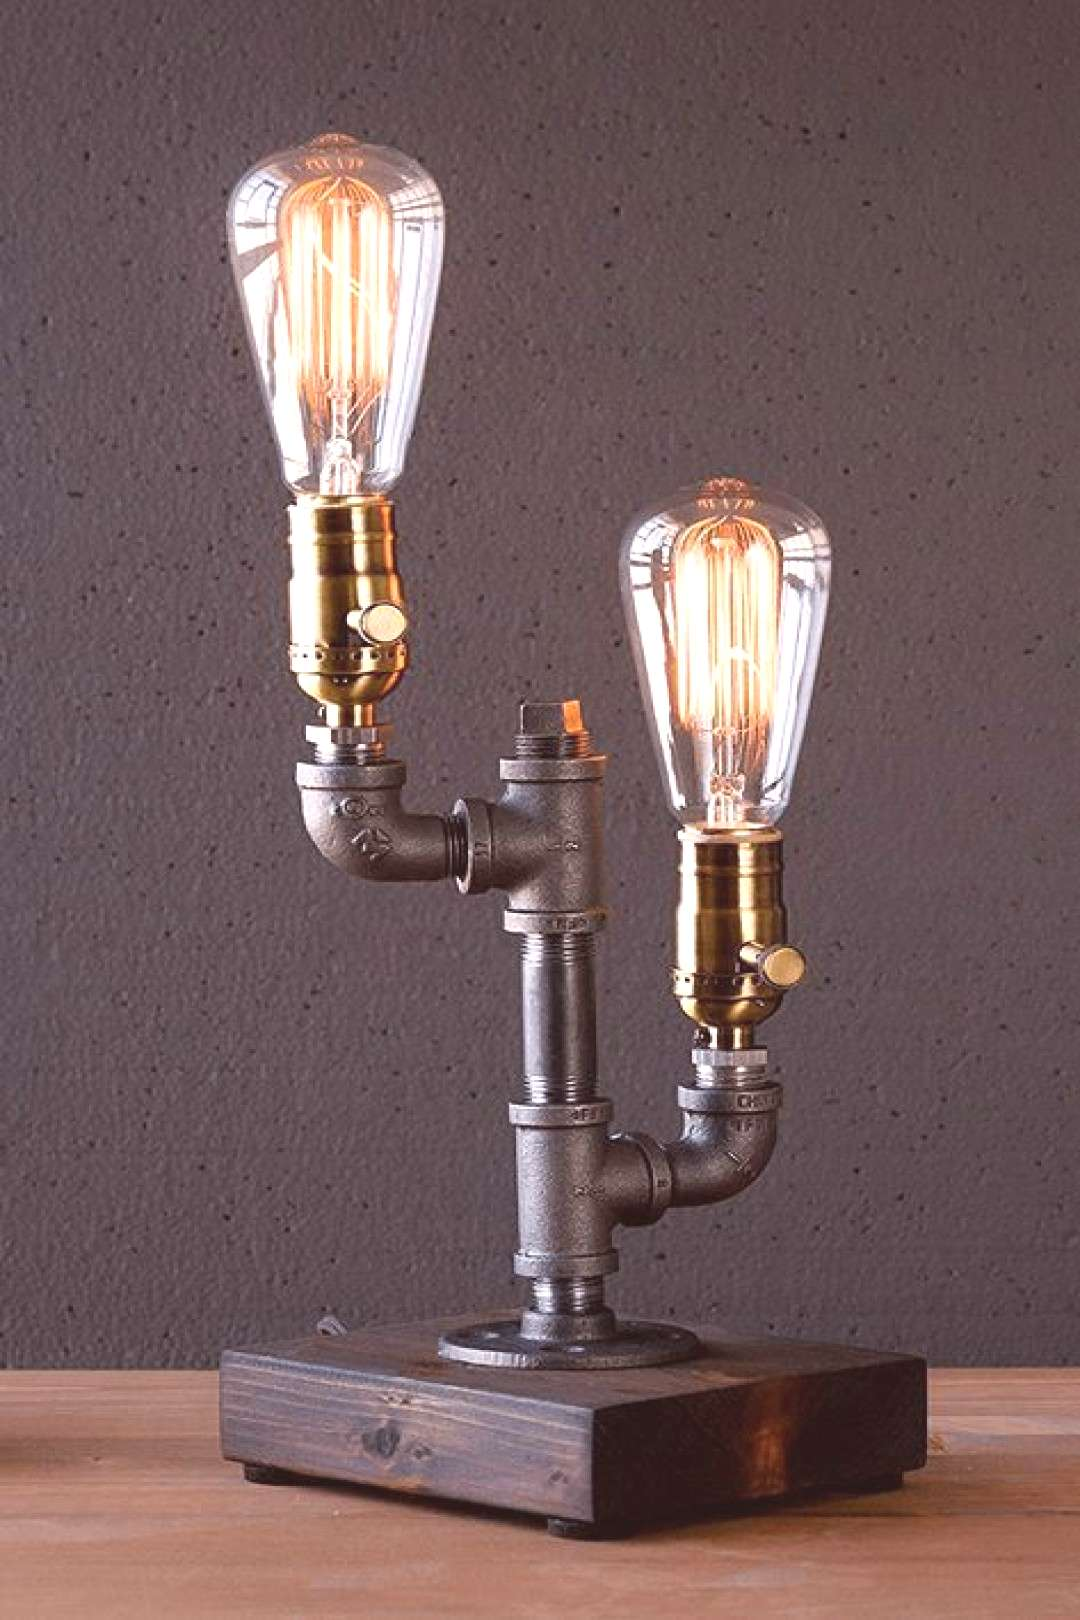 Vintage furniture ideas diy projects pipe lamp 38 Ideas for 2019